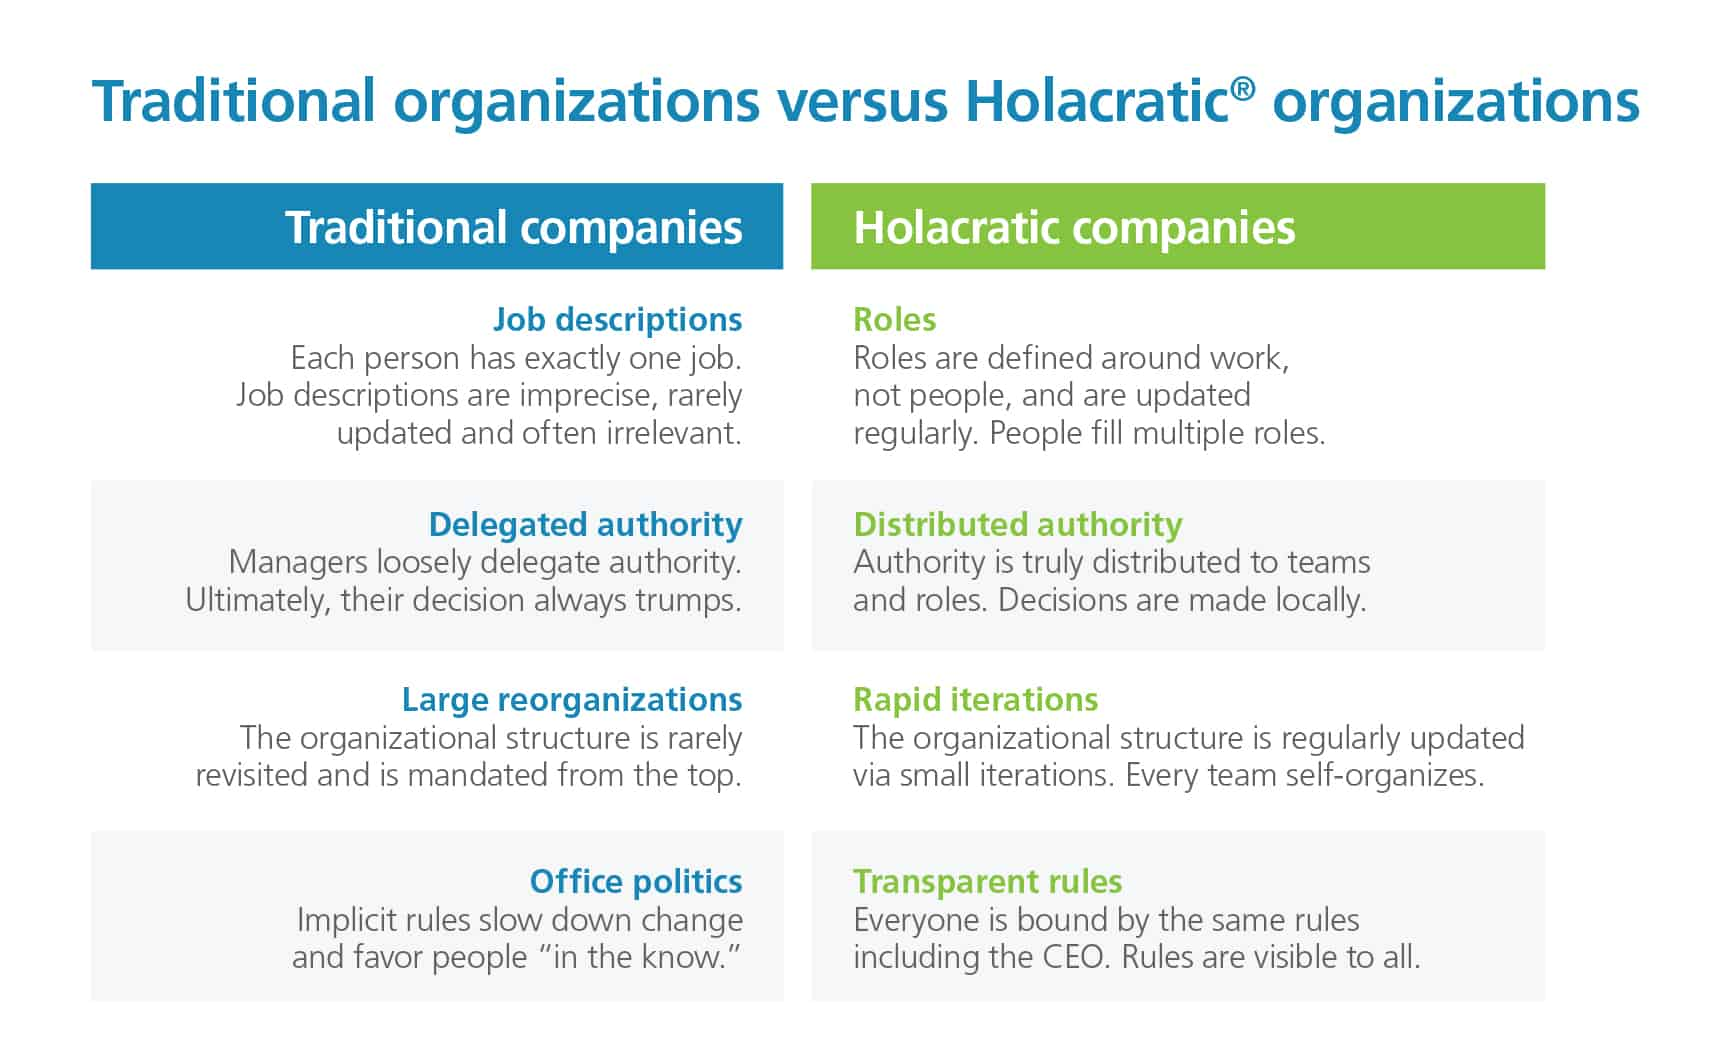 Chart comparing traditional organizations versus Holacratic® organizations